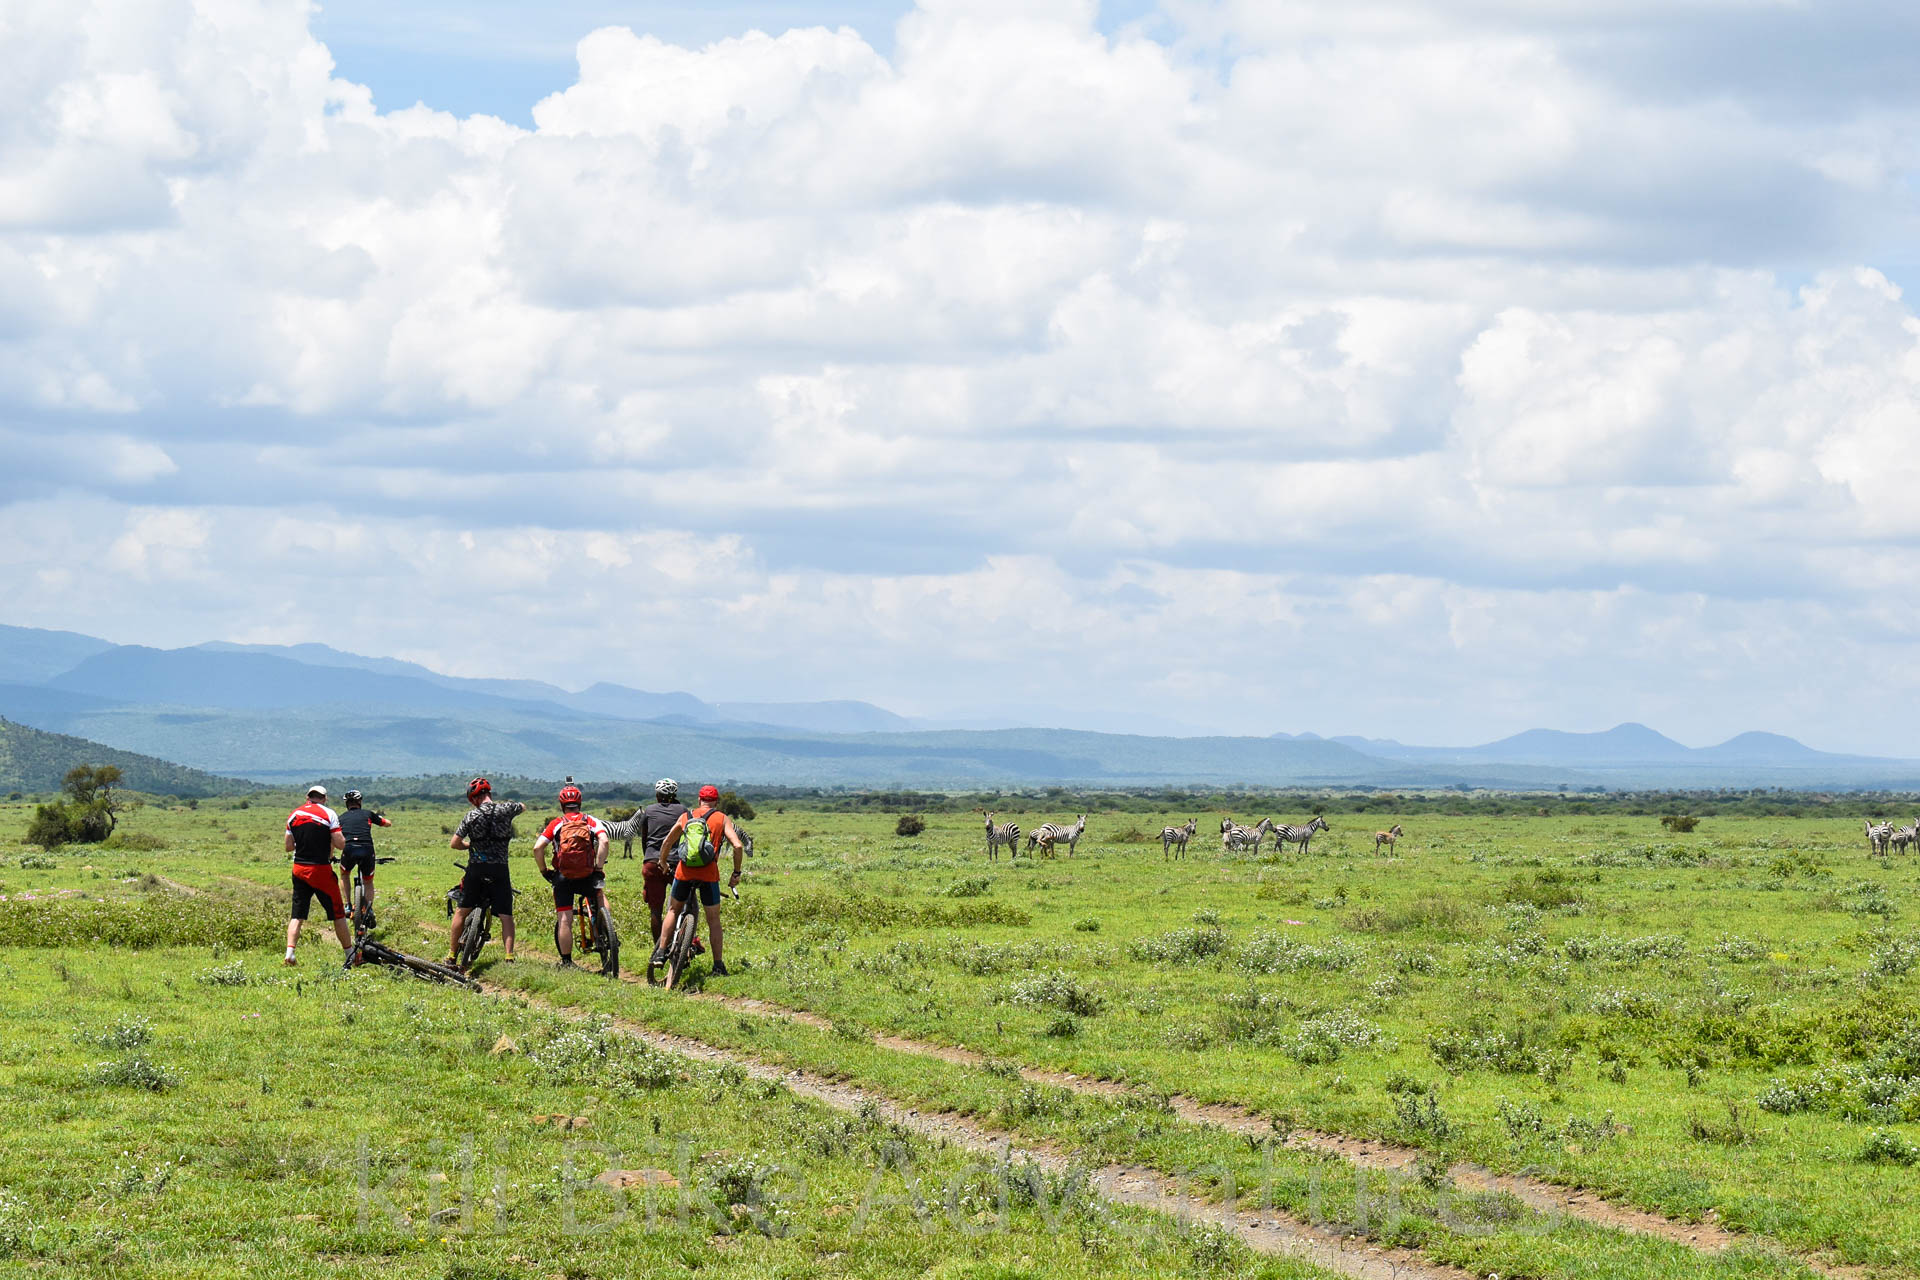 West Kilimanjaro Cycling Tour